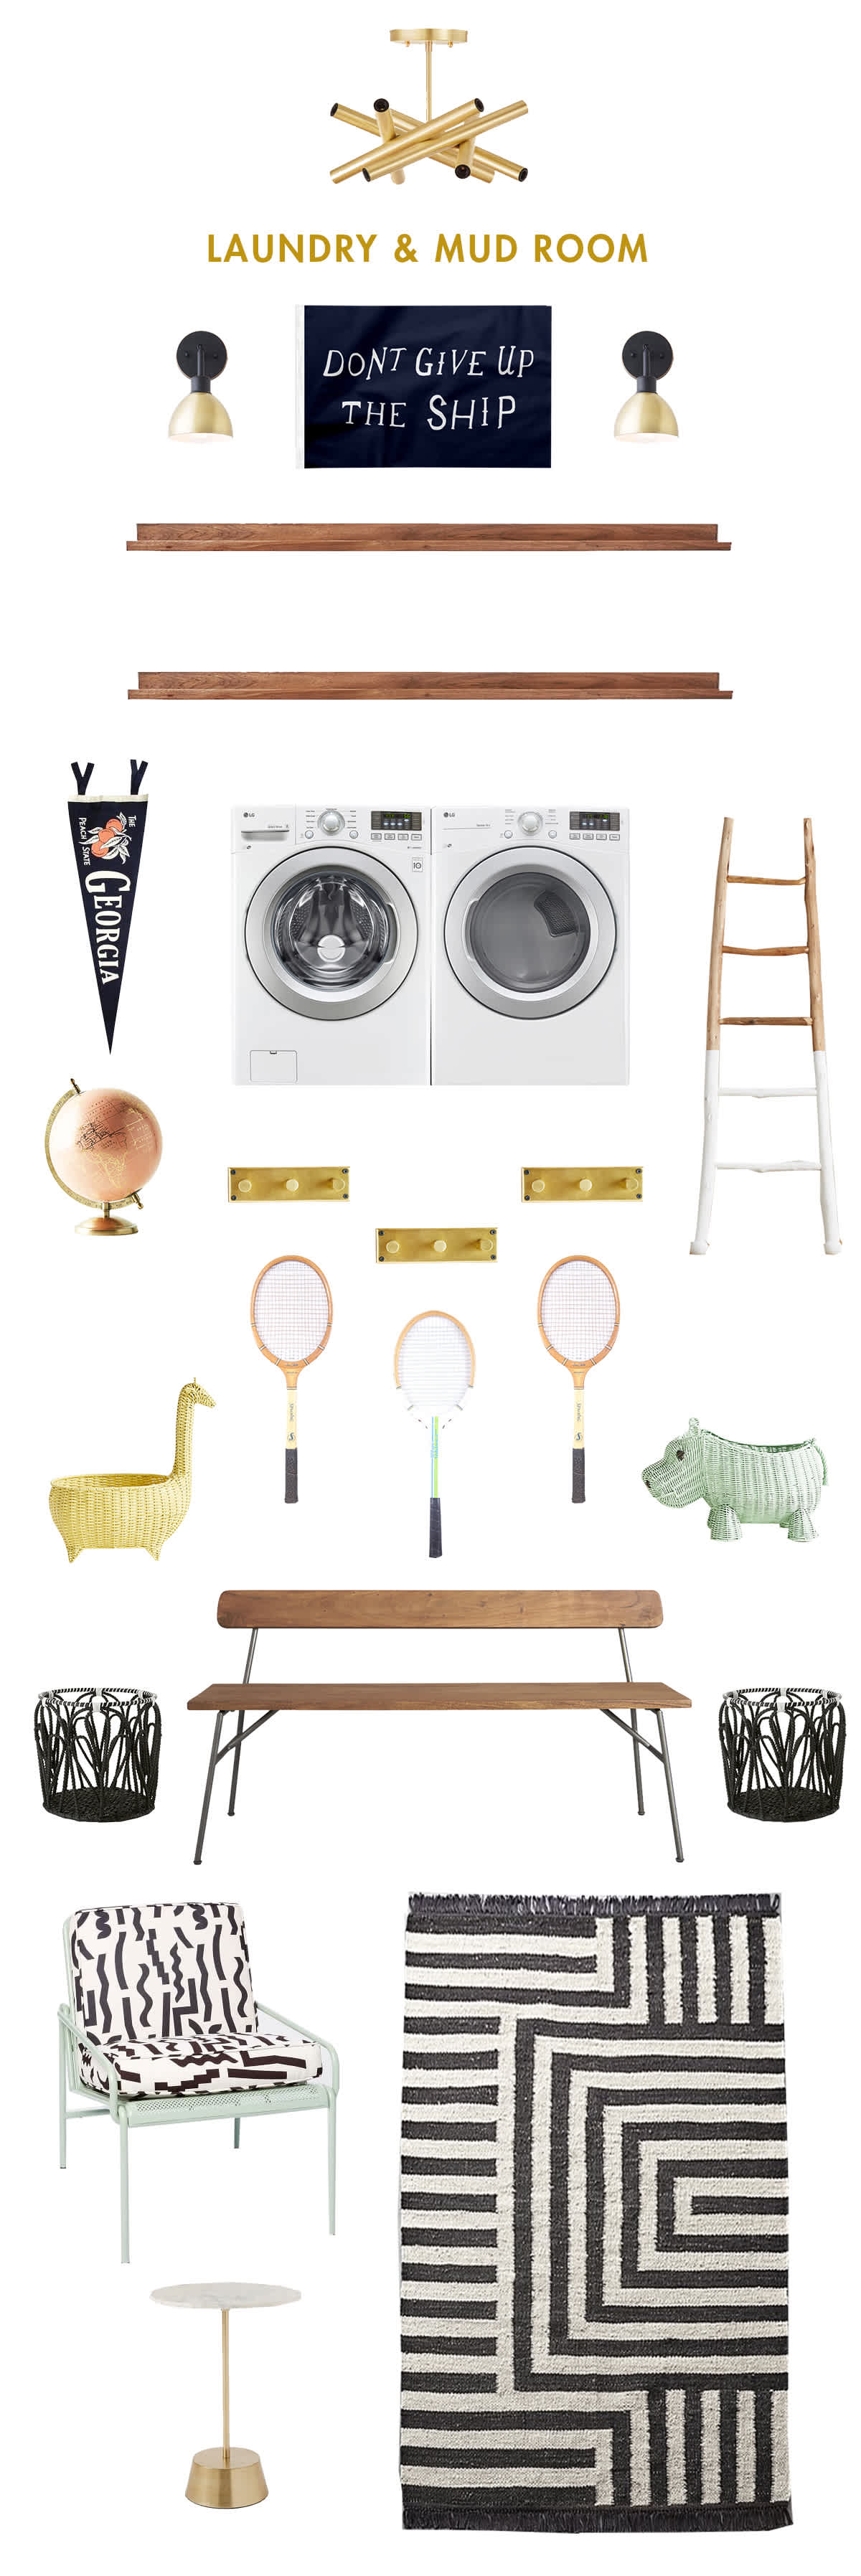 laundry and mud room inspiration